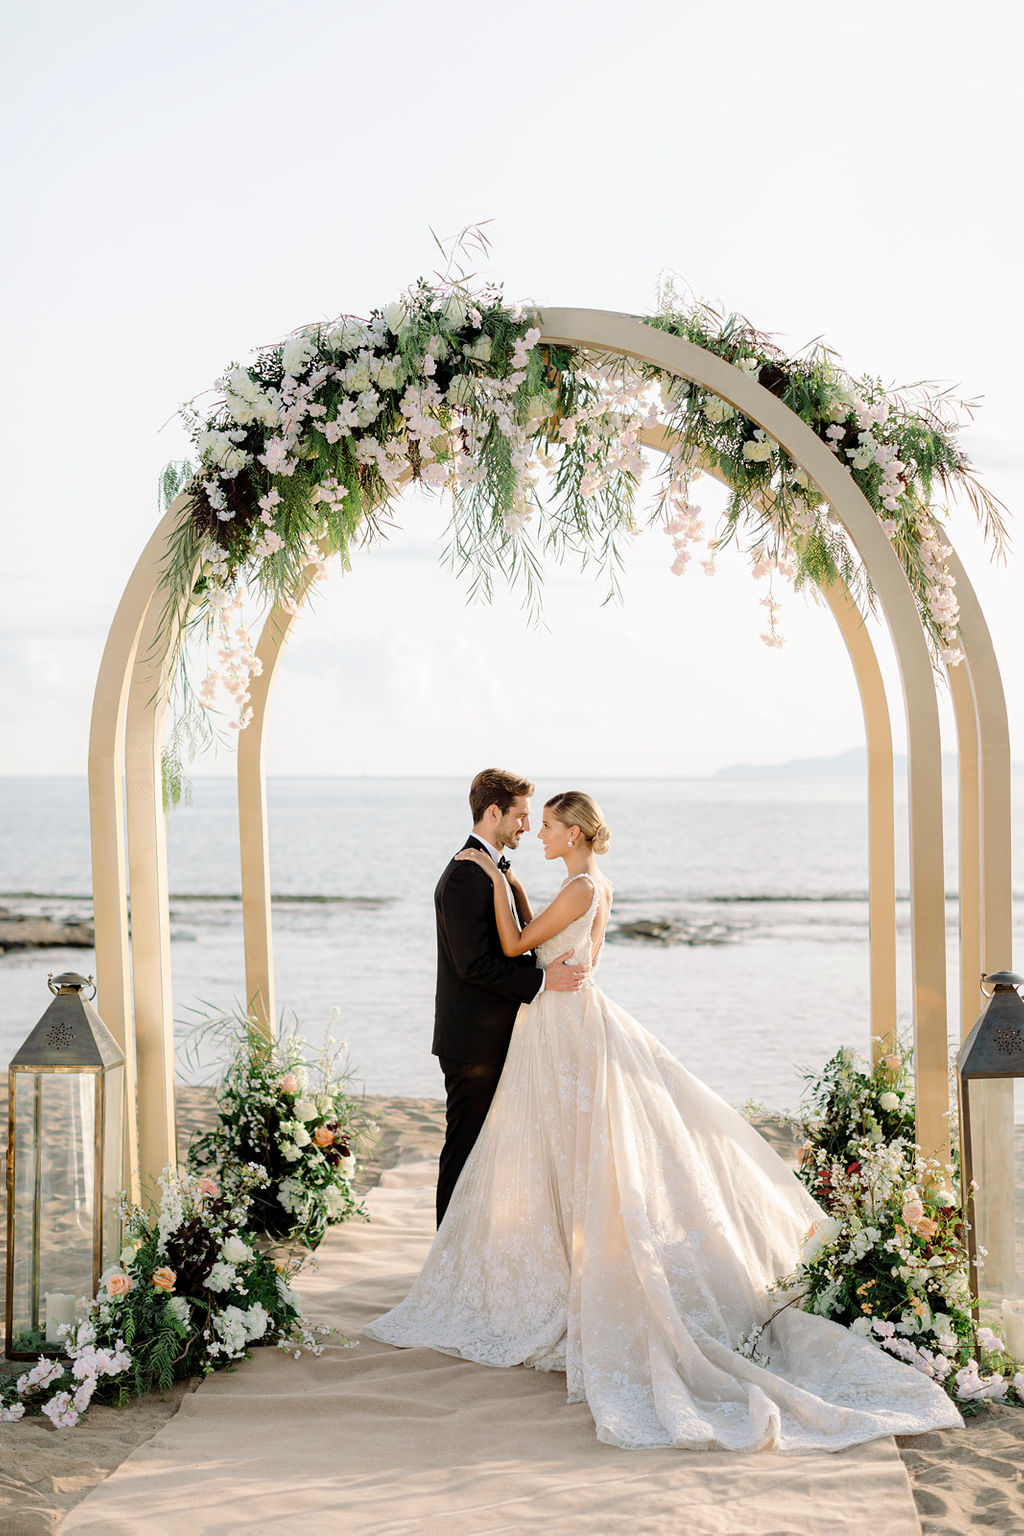 Magical wedding ceremony scenery by the Aegean sea, 2021